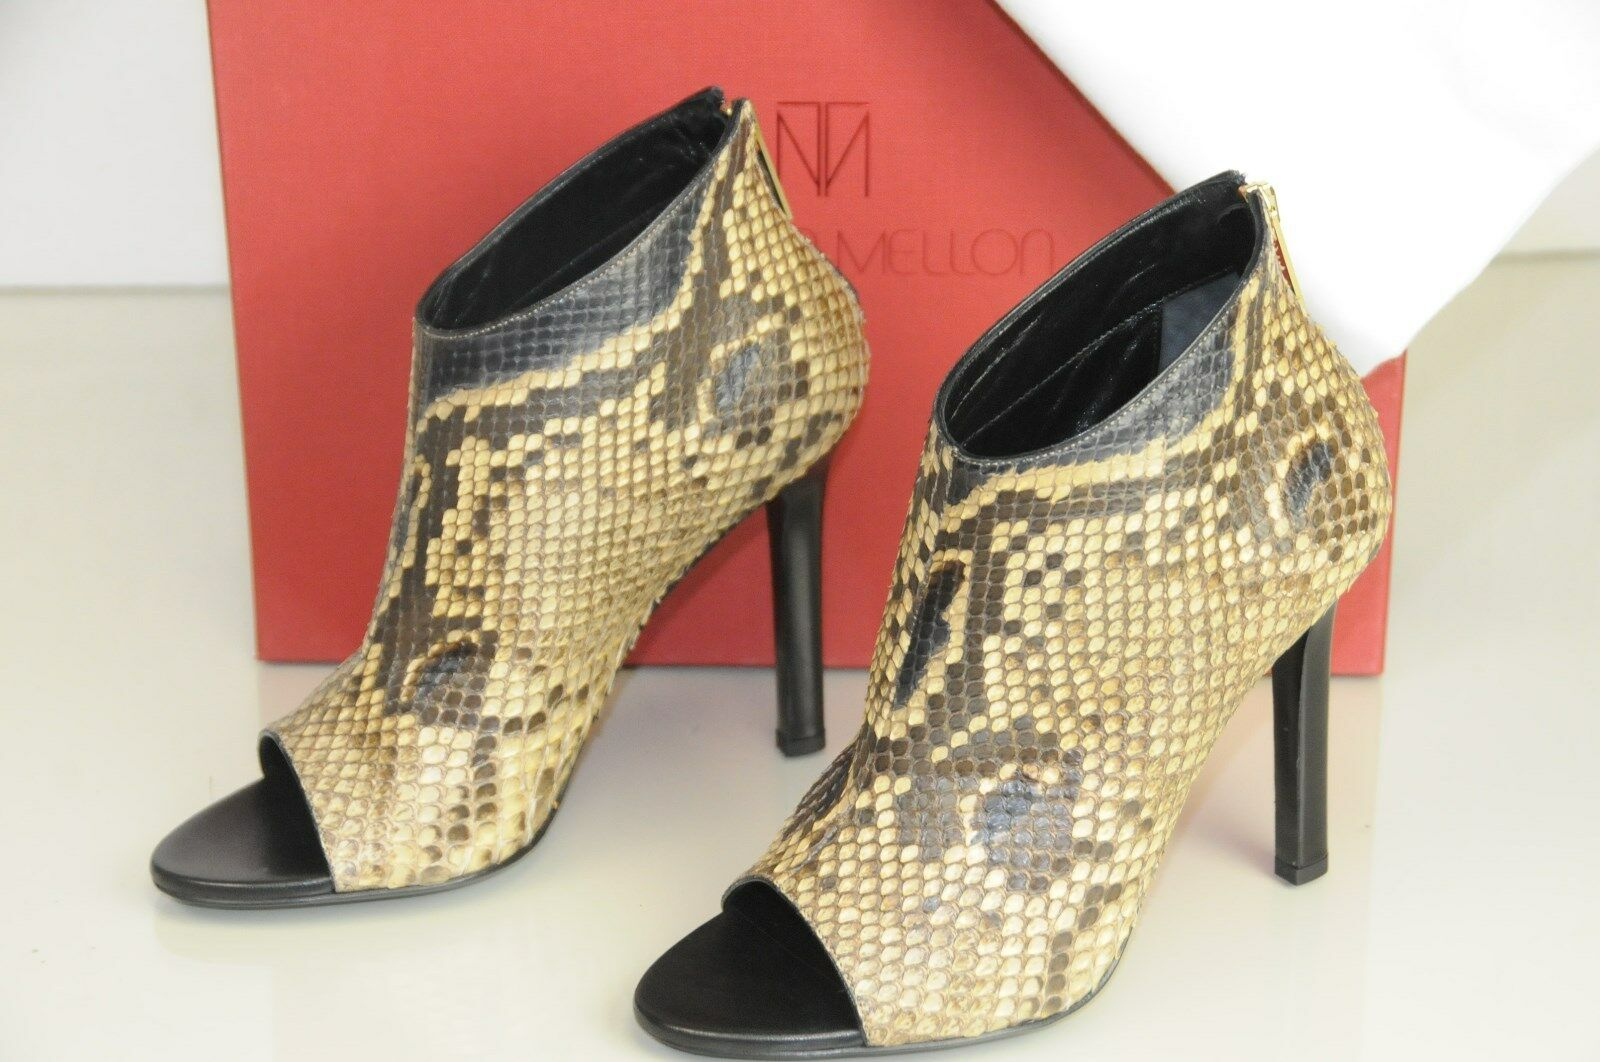 995 New Tamara Mellon DESIRE CAMEL PYTHON Exotic SKINS Boots Booties shoes 37